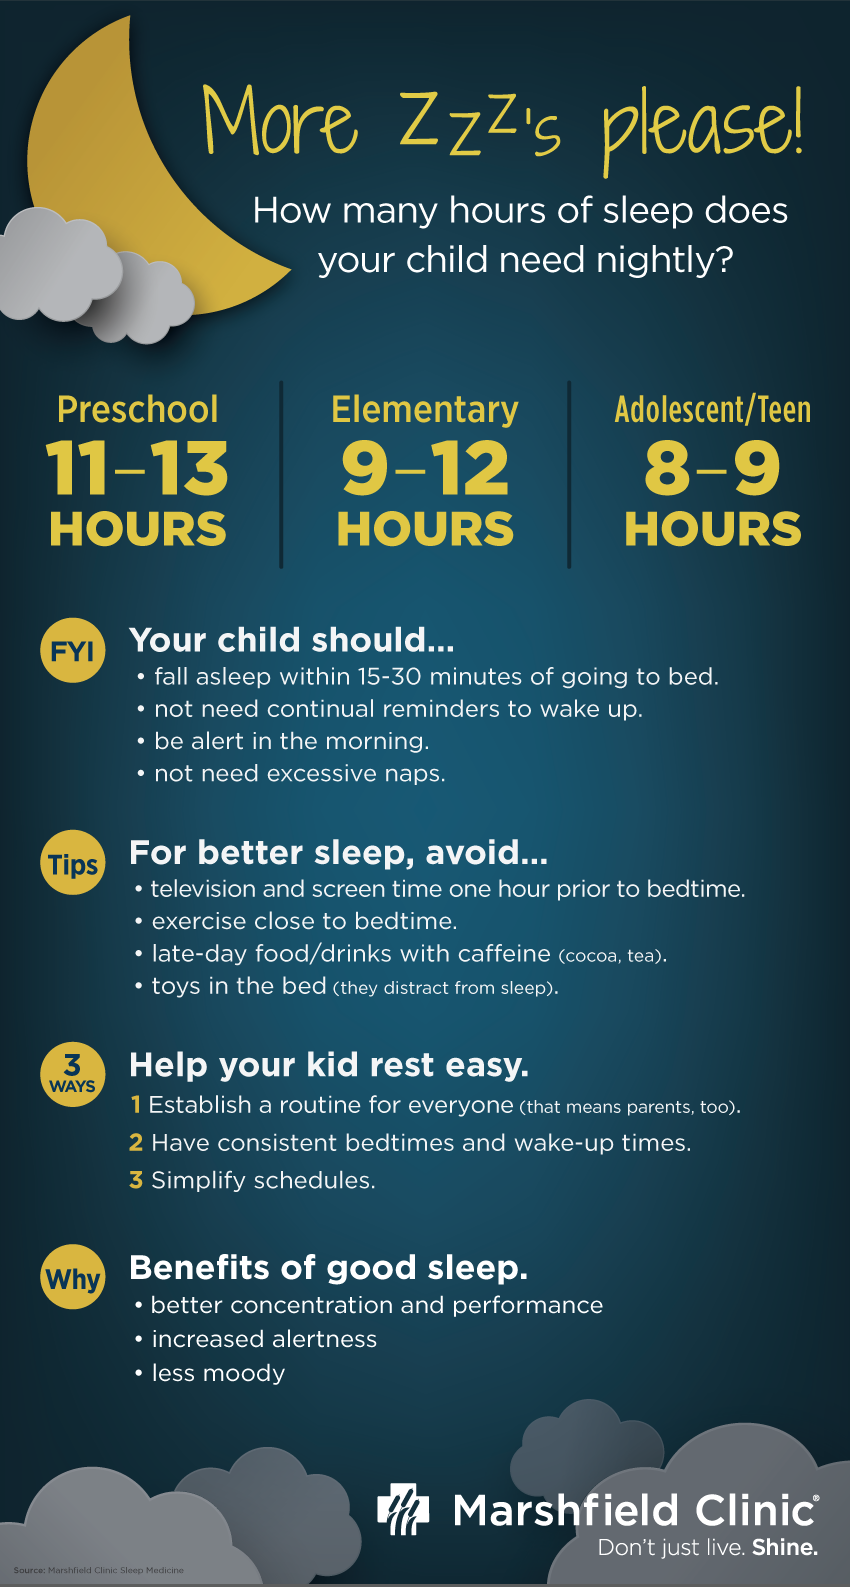 Zzzzz... How much sleep do our kids need?